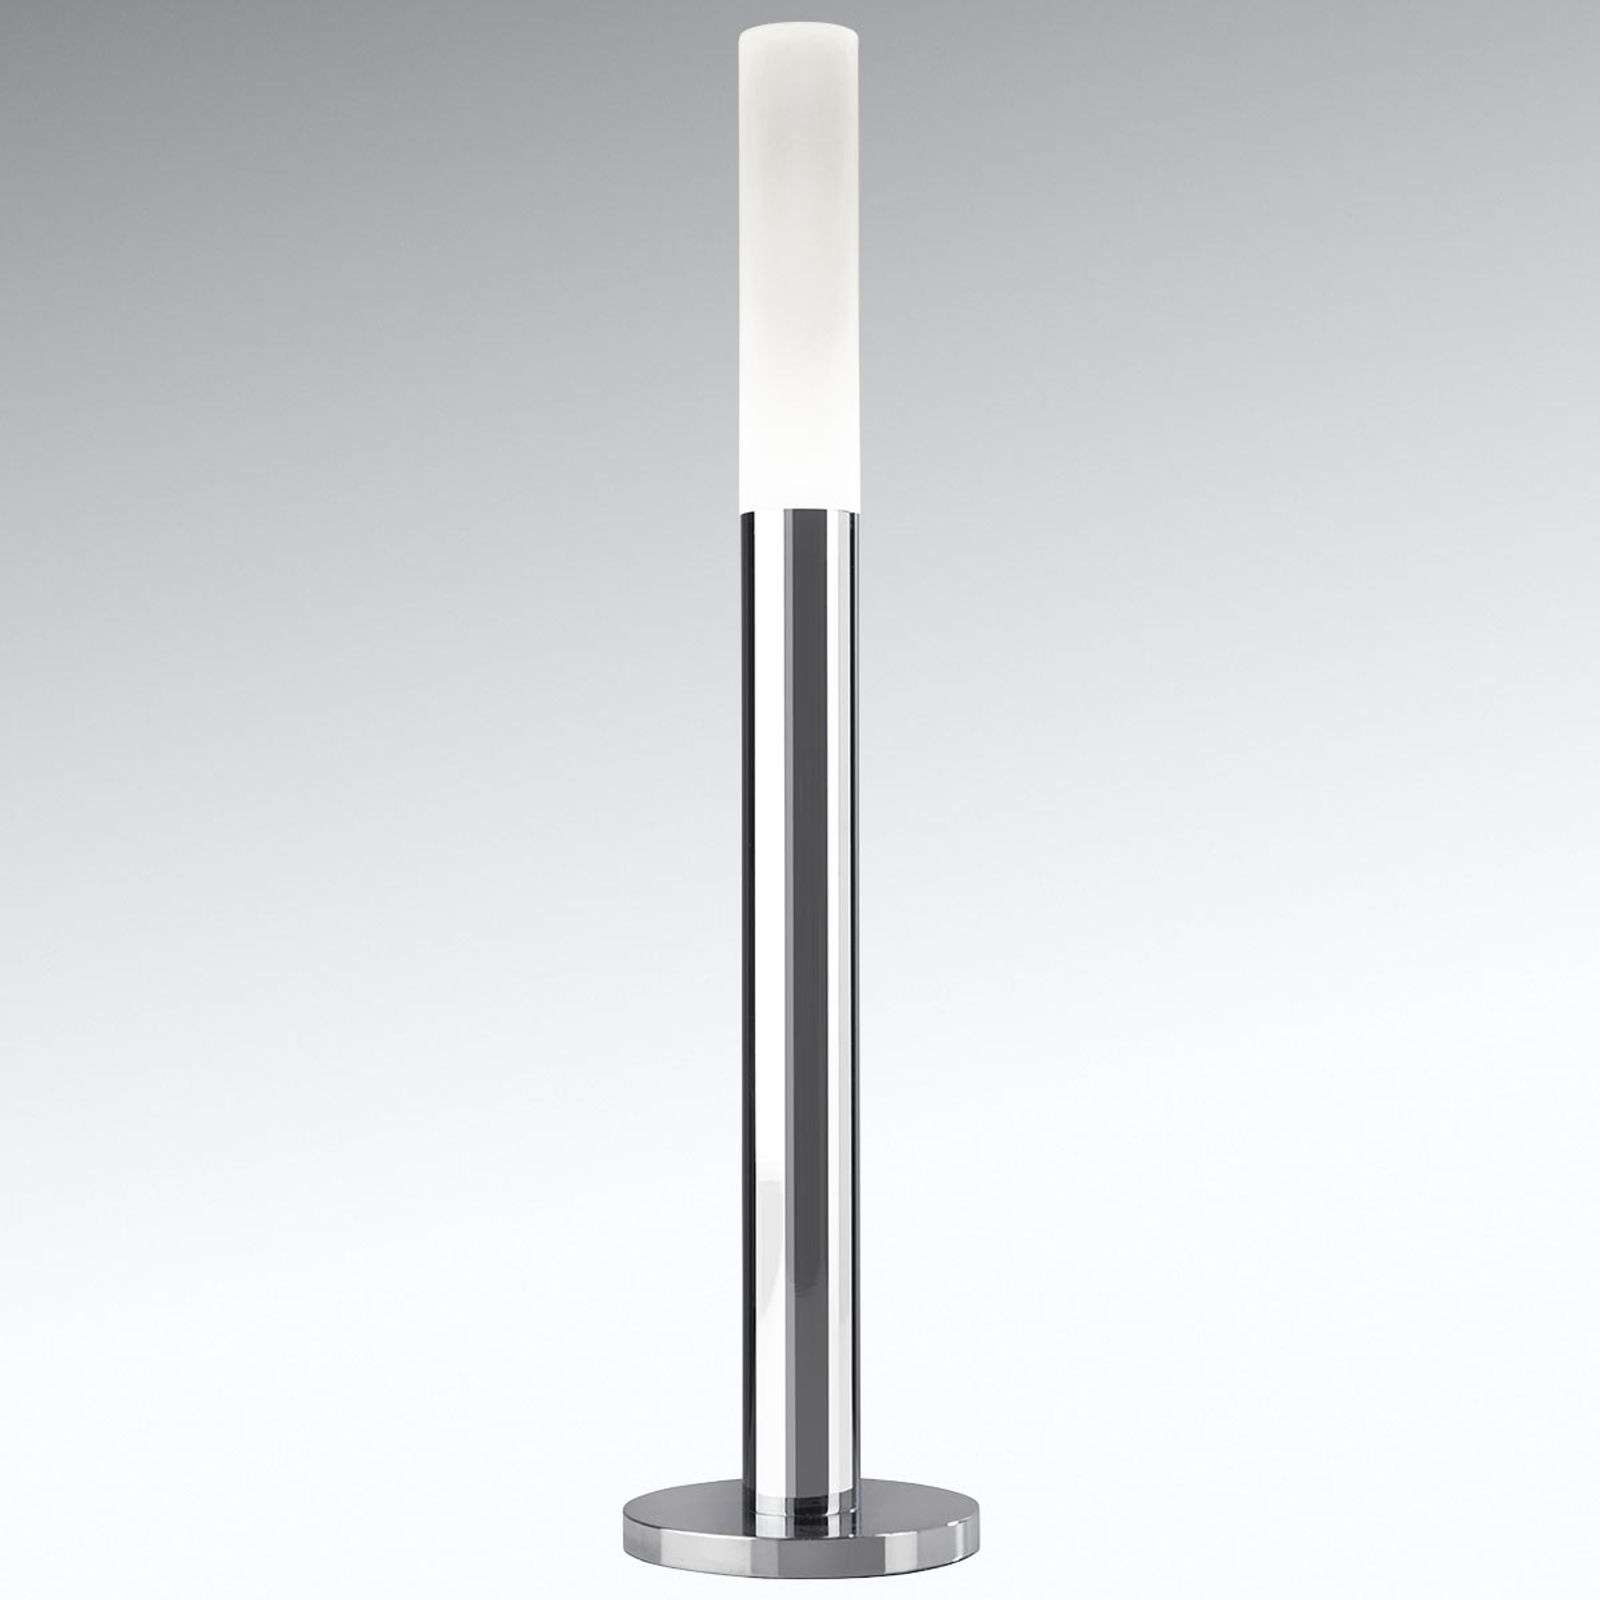 Lampe à poser LED Flambeau, dimmable